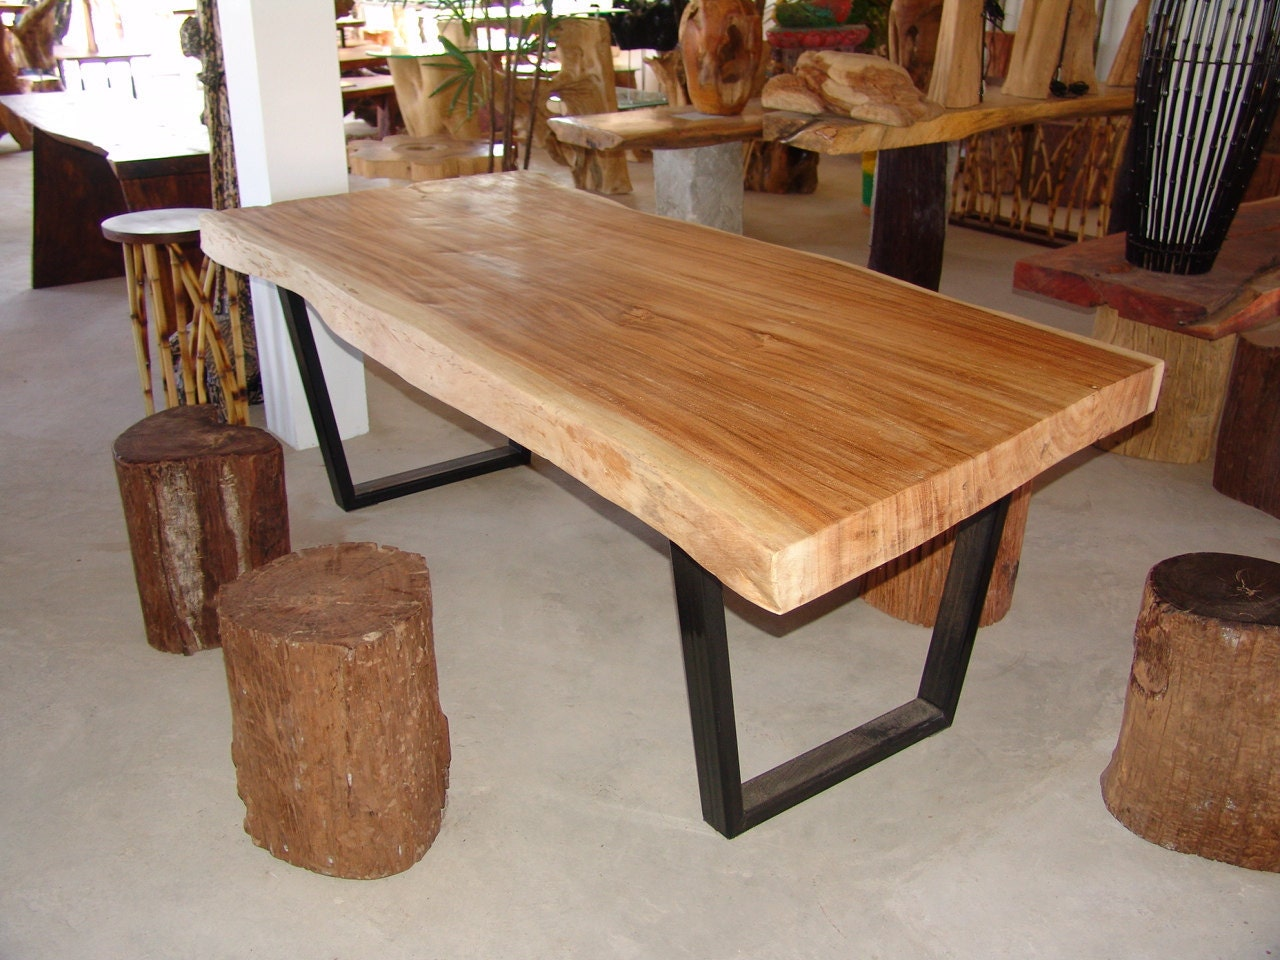 Live Edge Dining Table Acacia Wood Live Edge Reclaimed Solid : ilfullxfull268092845 from www.etsy.com size 1280 x 960 jpeg 269kB